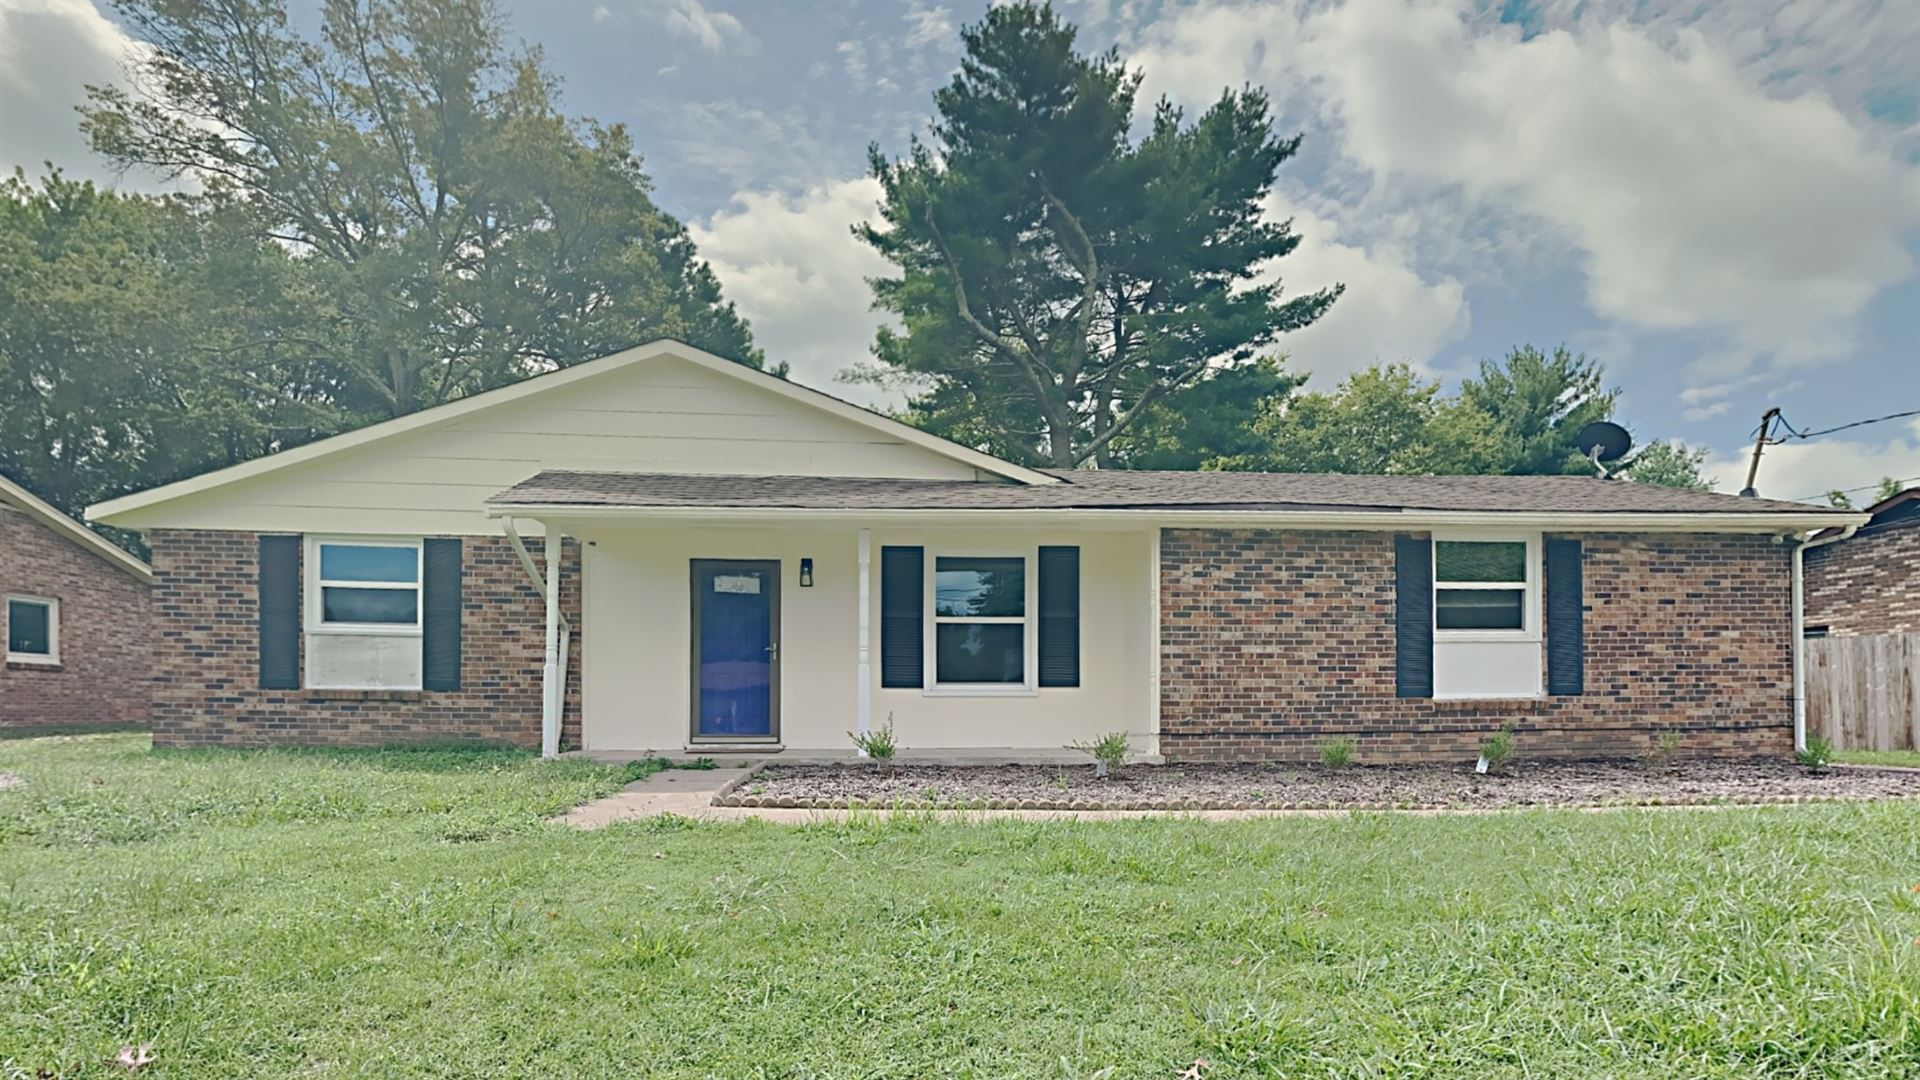 4909 Rainer Dr, Old Hickory, TN 37138 - MLS#: 2288537